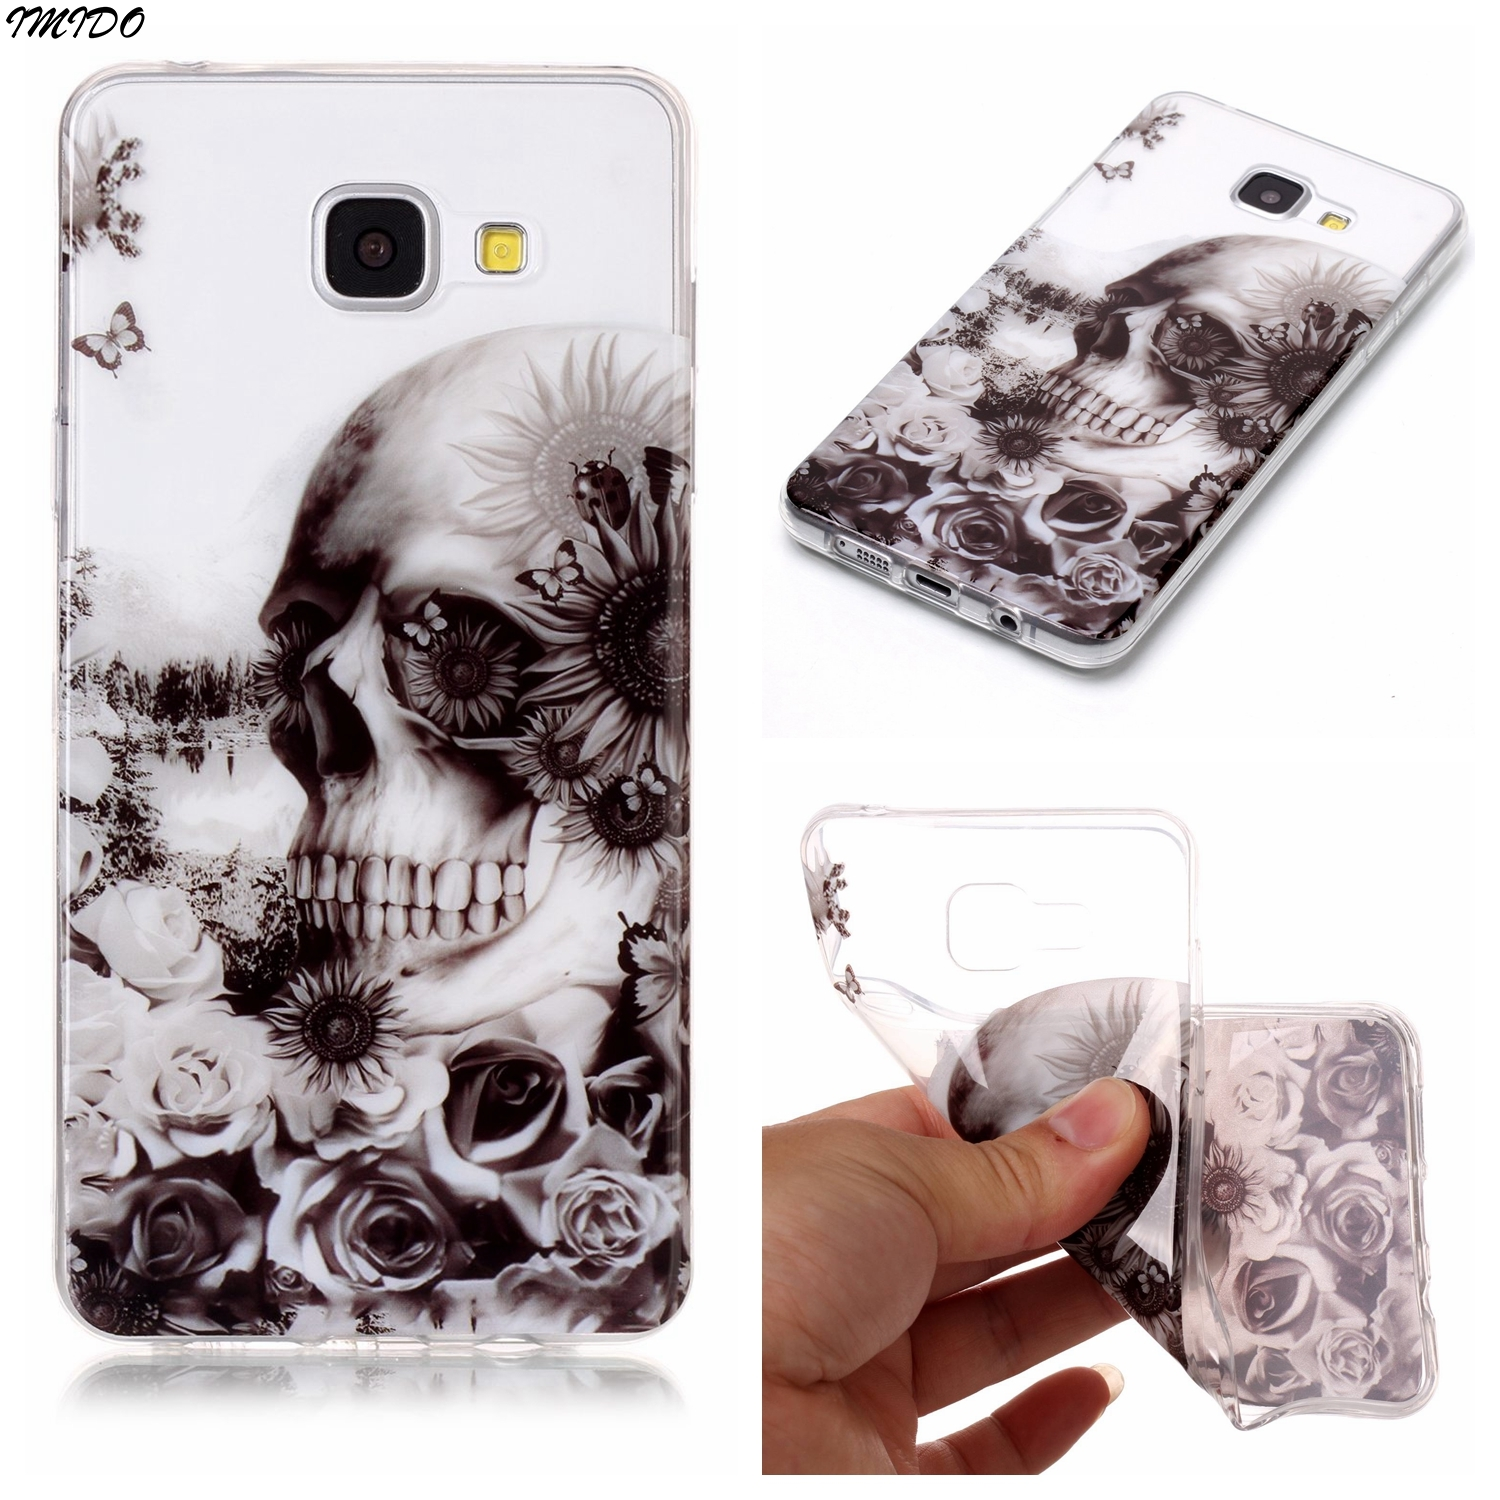 For <font><b>Samsung</b></font> <font><b>Galaxy</b></font> <font><b>A5</b></font> 2016 Case SM-A510F Couqe SM-A510FD Cover <font><b>Galaxy</b></font> <font><b>A5</b></font> 2016 A510 Capa para <font><b>Galaxy</b></font> A <font><b>510</b></font> <font><b>A5</b></font> 2016 Phone Case image